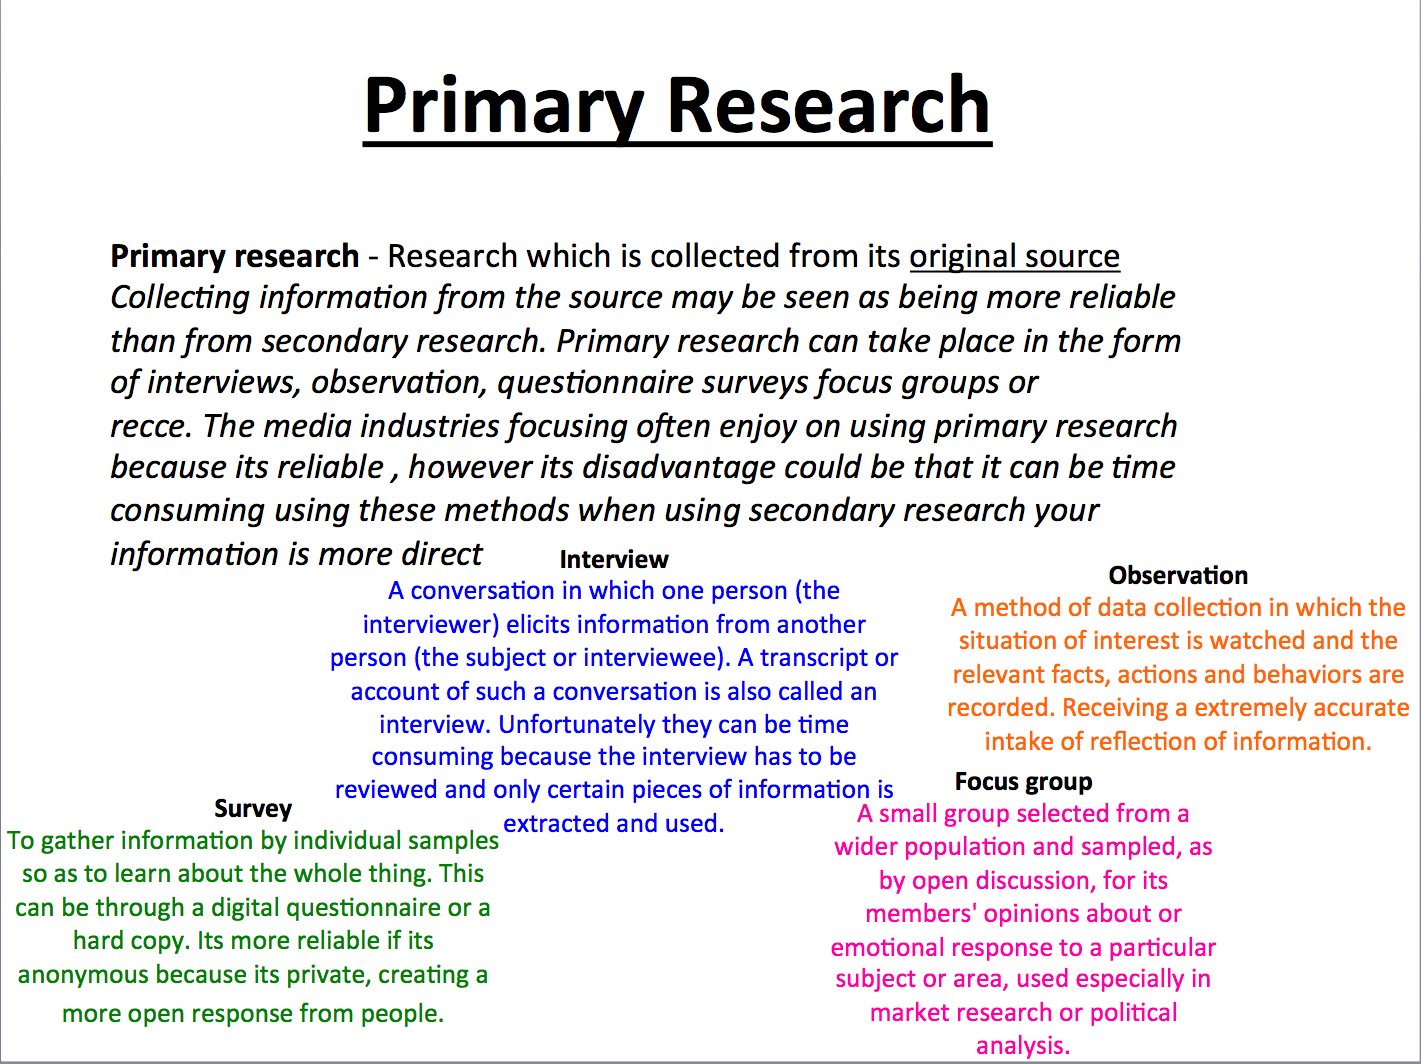 differences between primary and secondary research methods Self-report data is fairly standard as primary research, and for good reason self- report methods like surveys, social media findings, and focus groups are less expensive than getting into the nitty gritty of behavioral metrics sending out a survey or gathering a sample for a focus group gives you the.